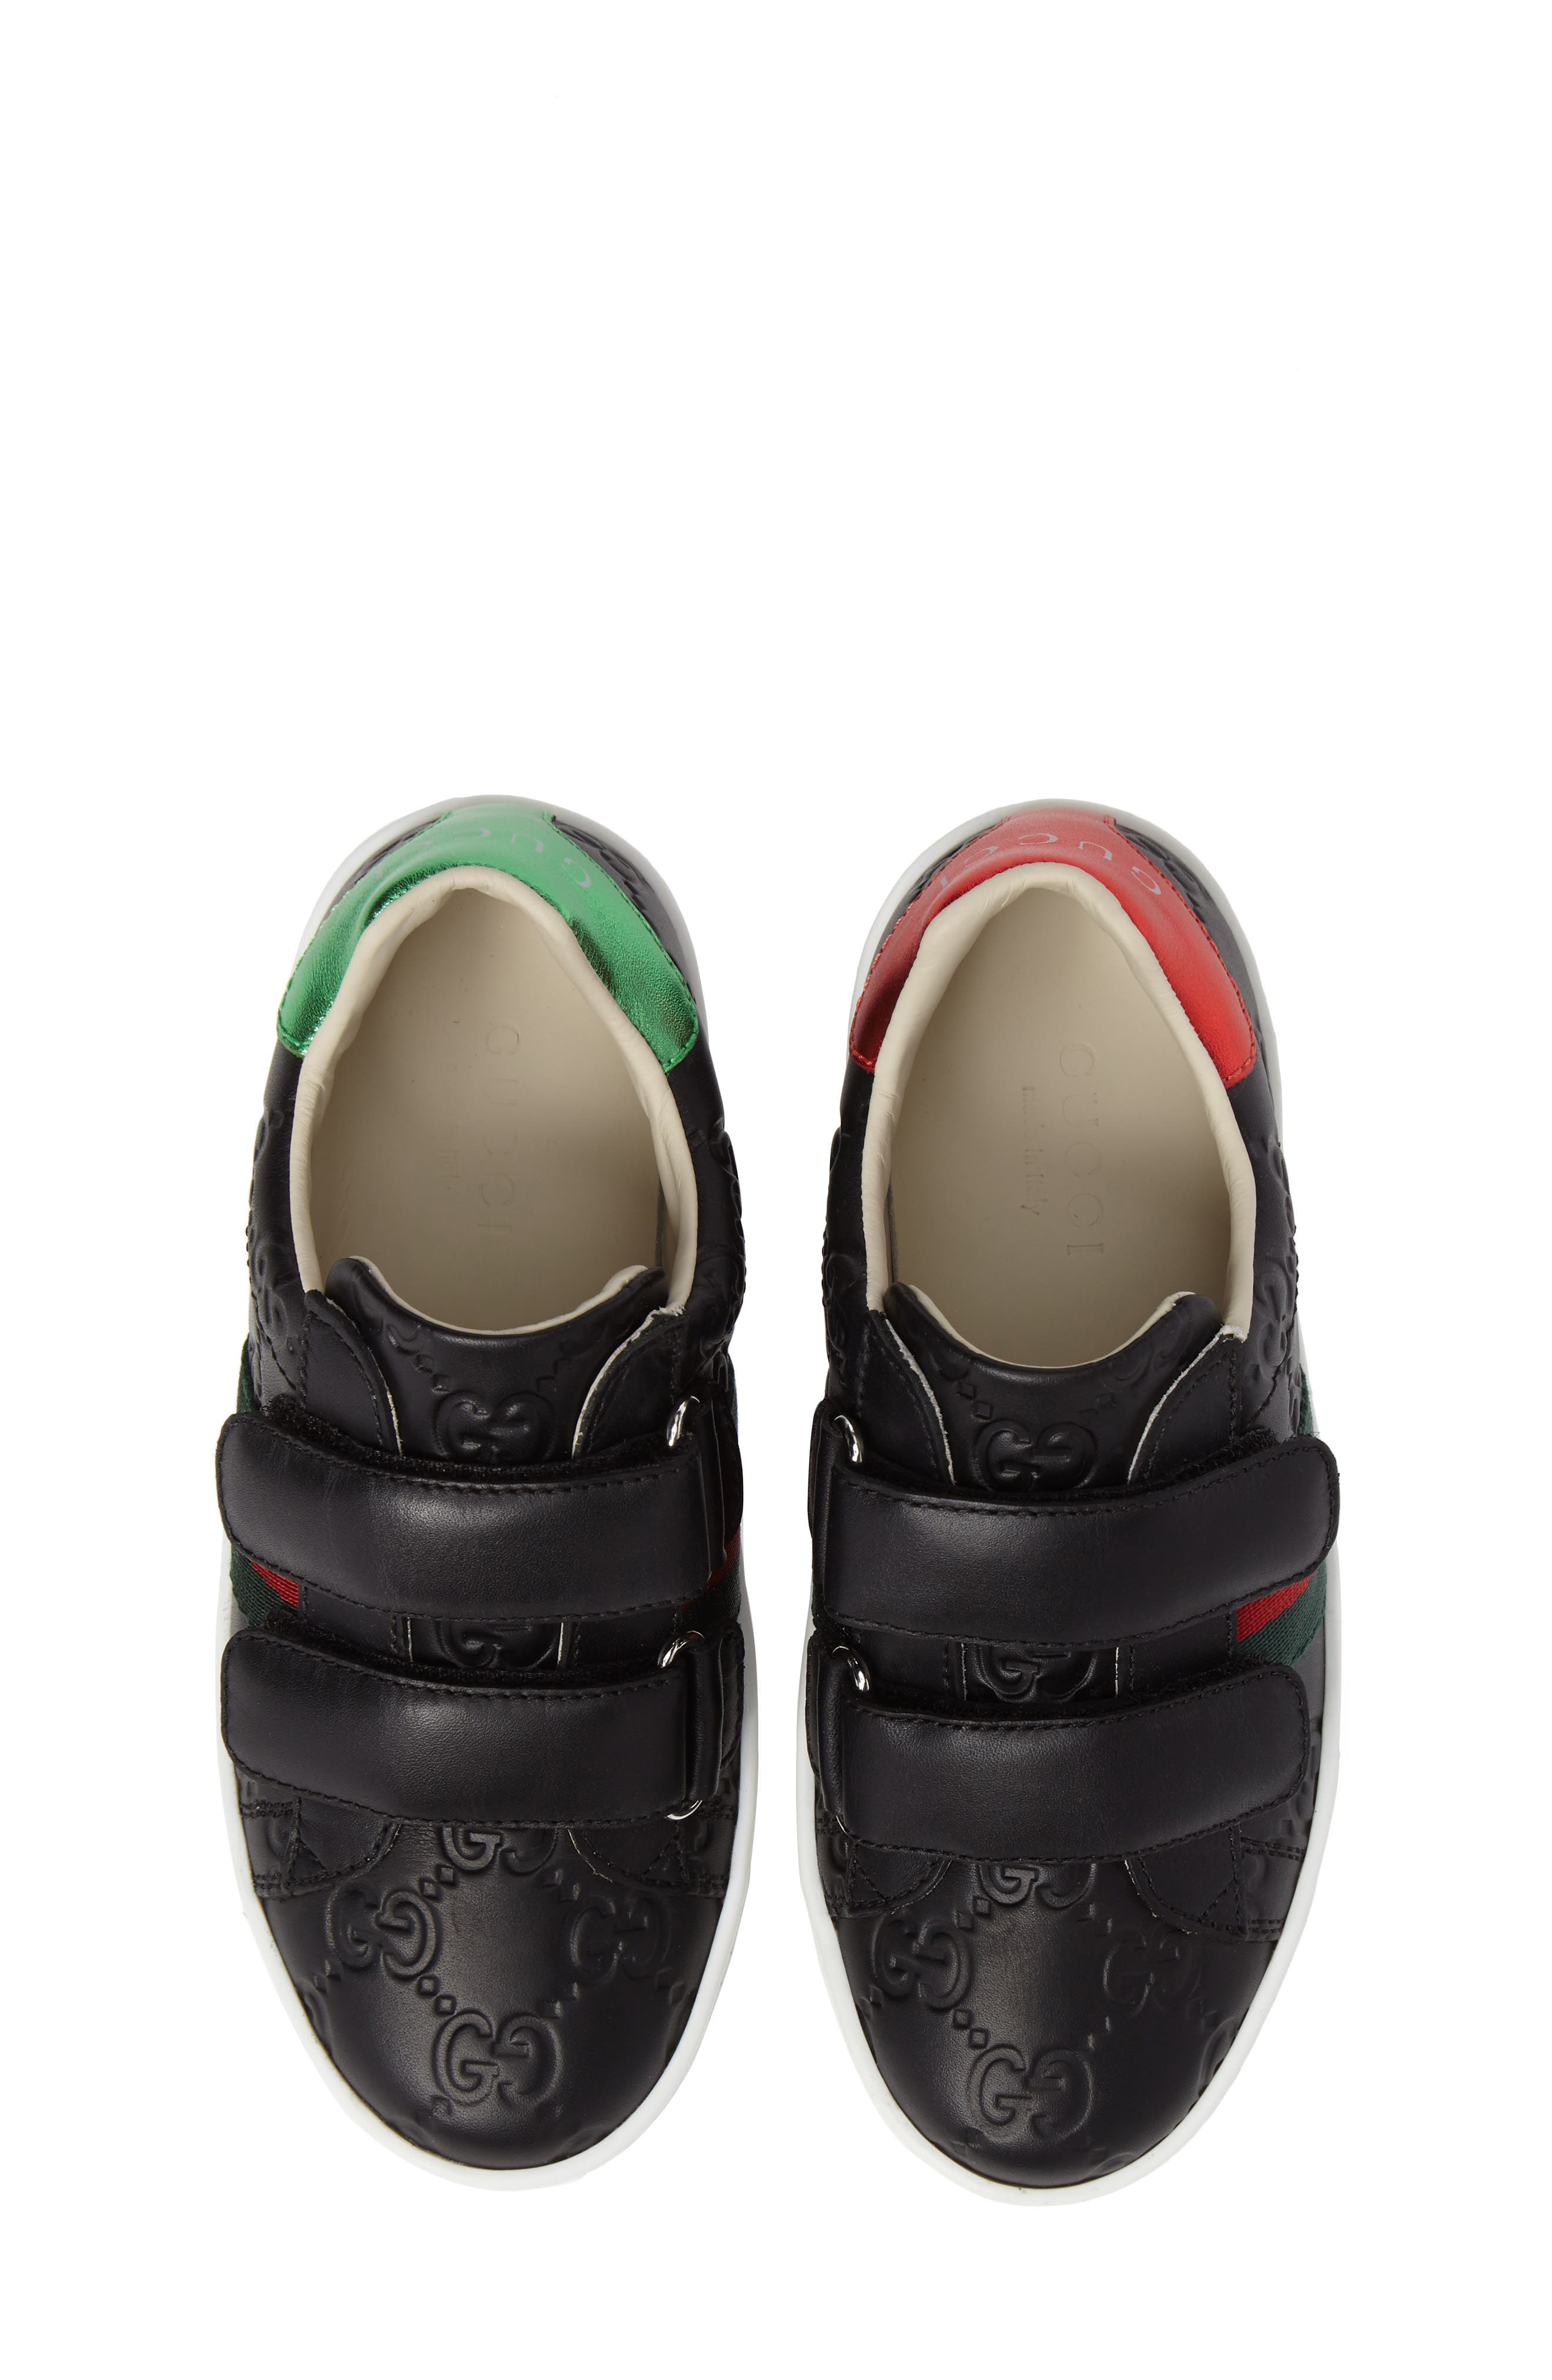 Main Image - Gucci New Ace Sneaker (Toddler & Little Kid)